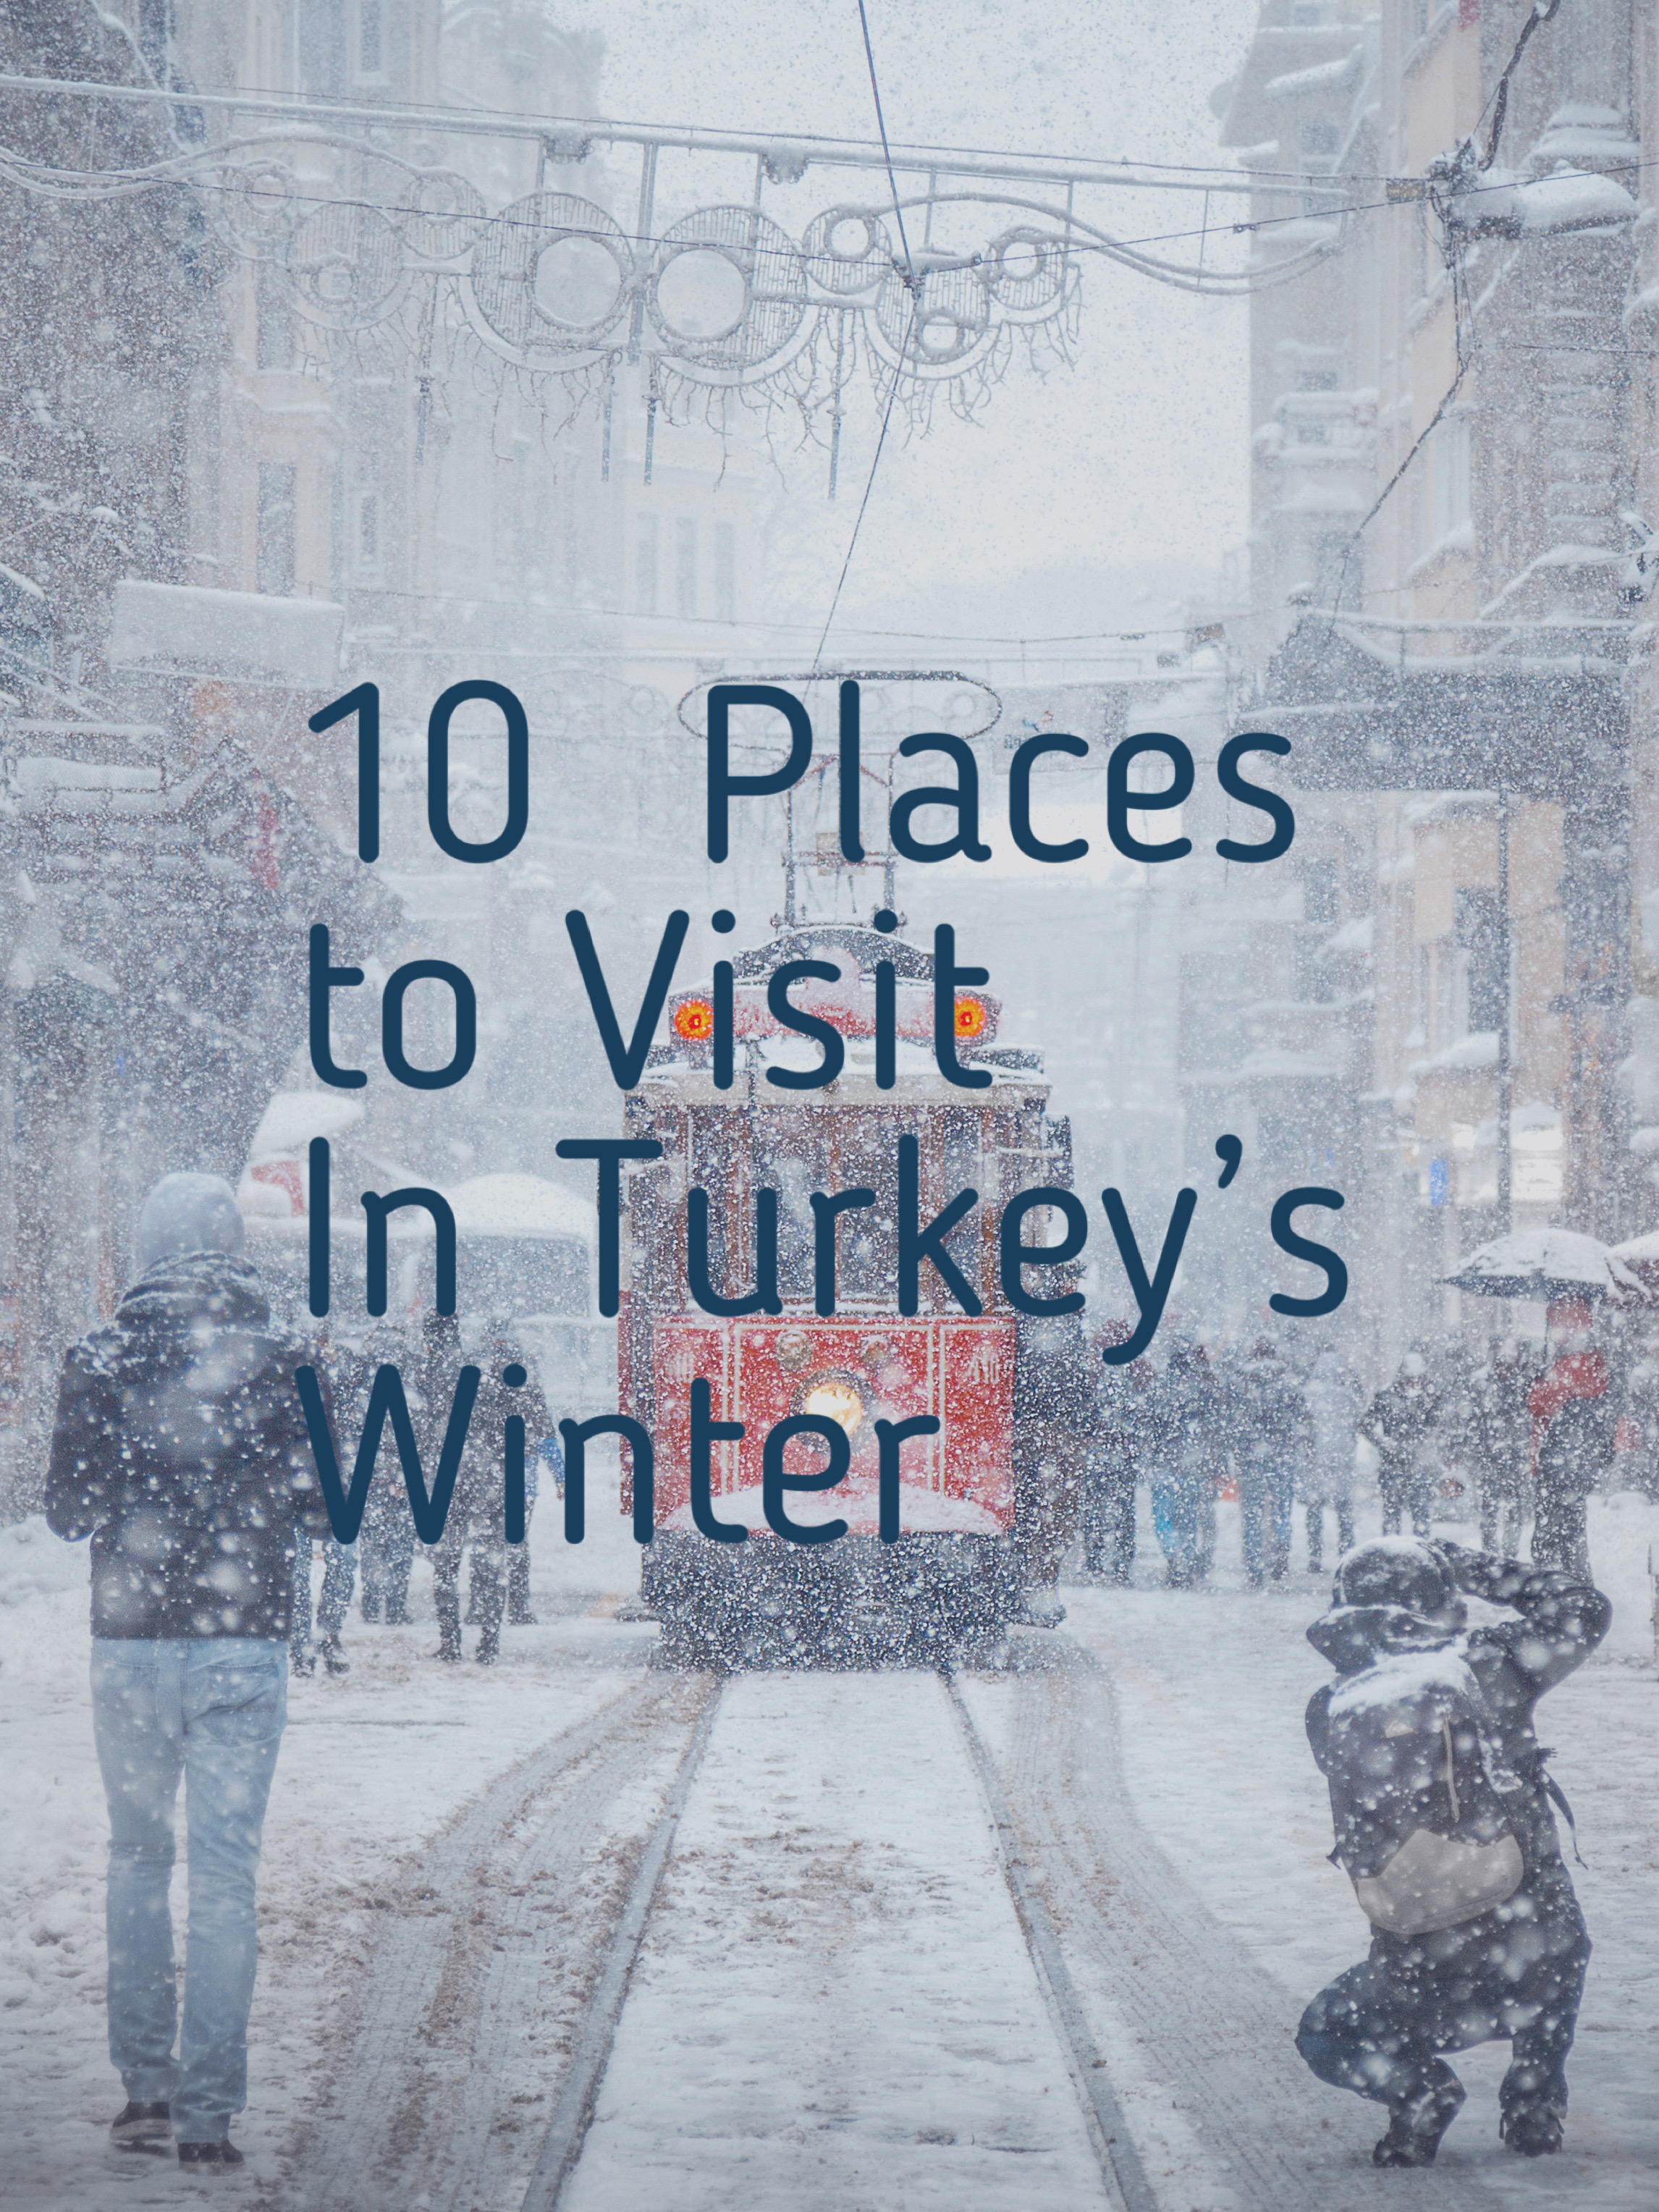 10 Places to Visit in Turkey's Winter